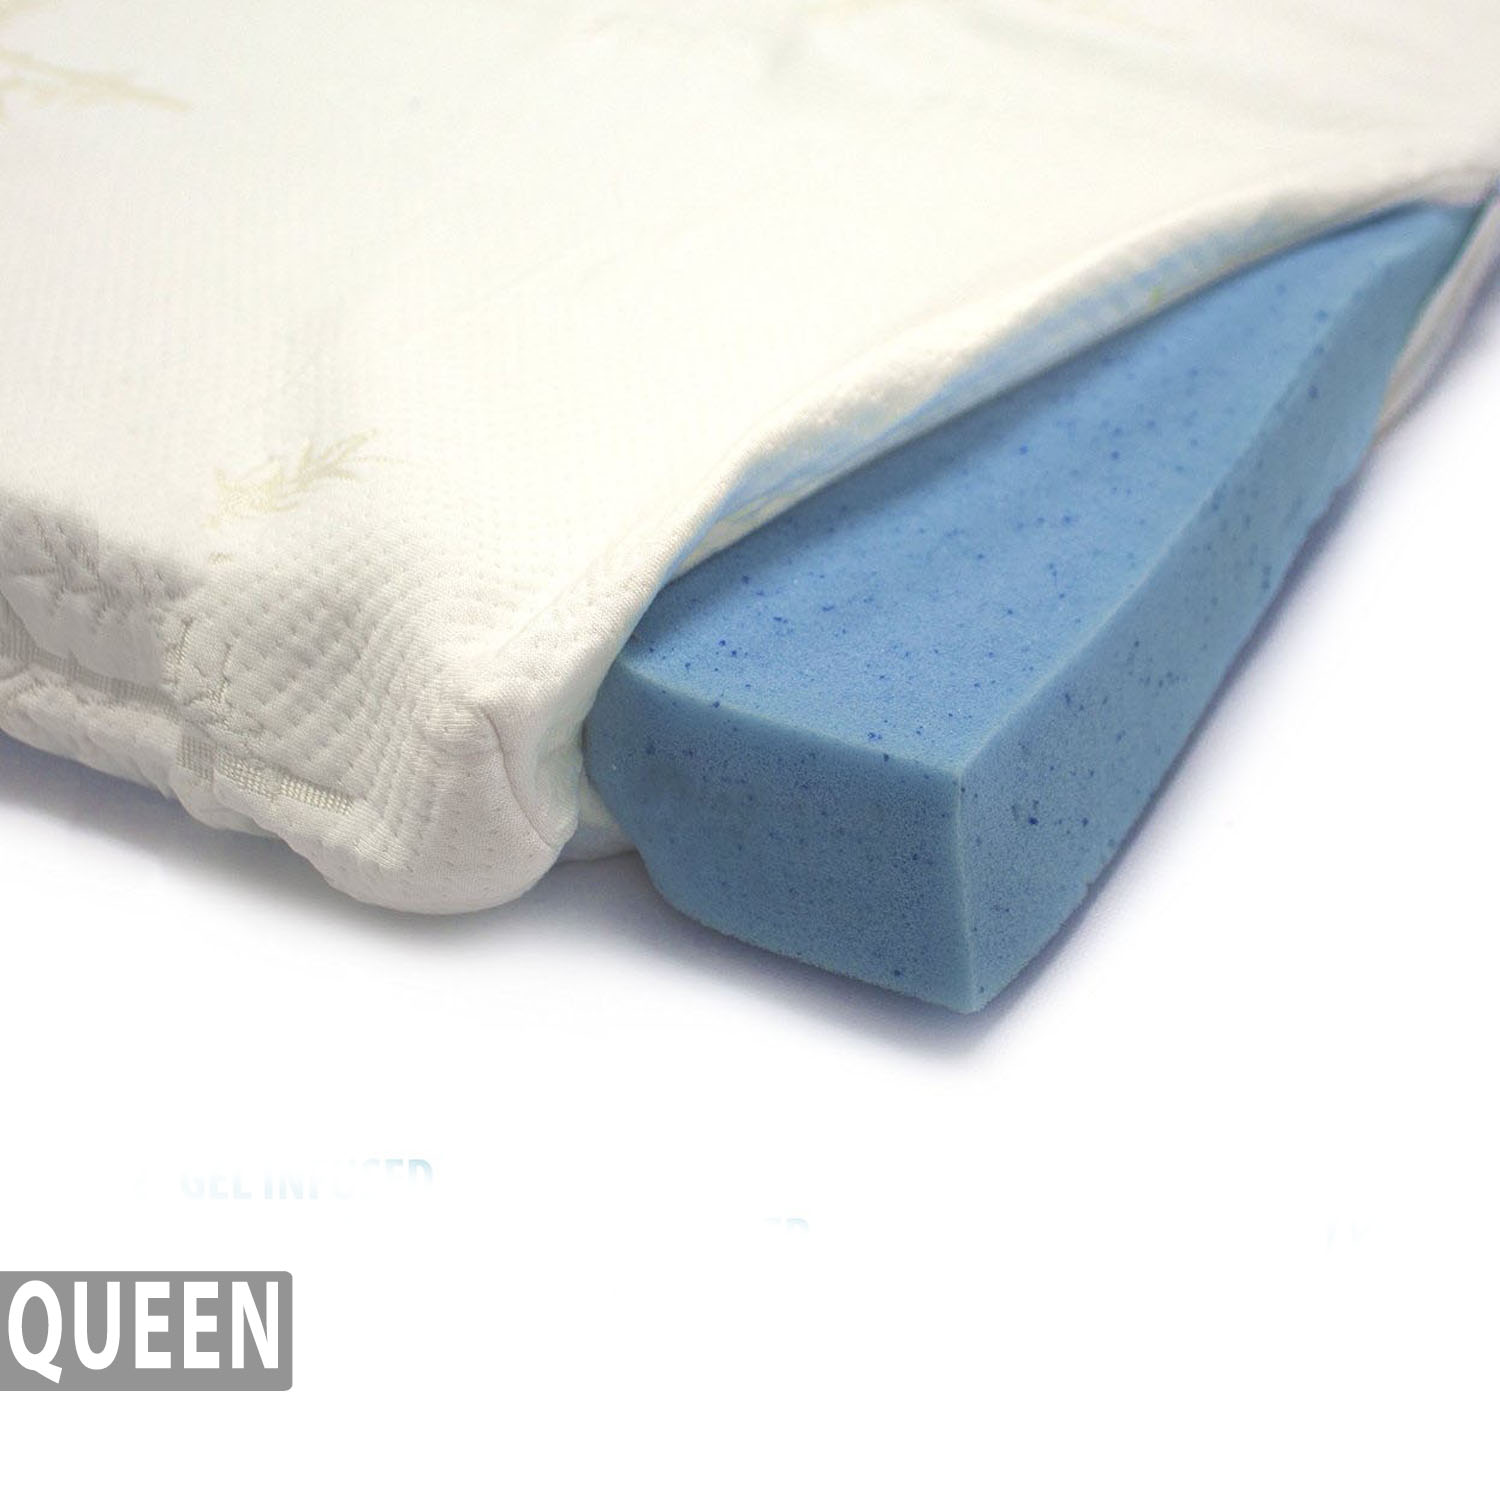 Bamboo Mattress Topper Review Gel Infused Memory Foam Mattress Topper Bamboo Cover Queen